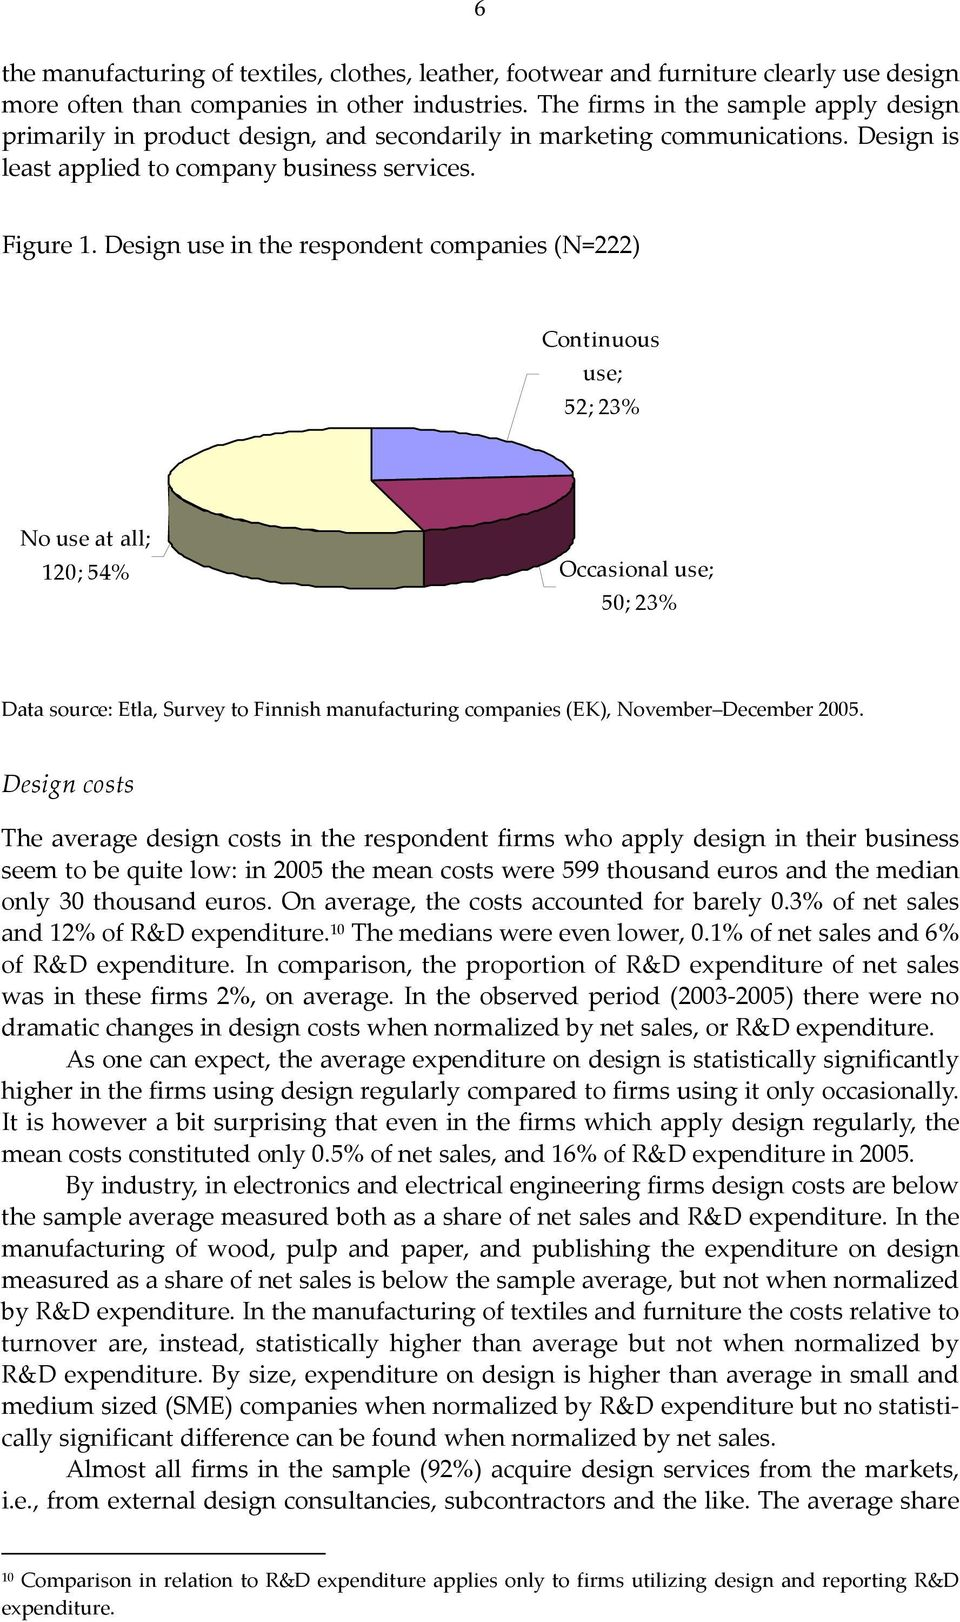 Design use in the respondent companies (N=222) Continuous use; 52; 23% No use at all; 120; 54% Occasional use; 50; 23% Data source: Etla, Survey to Finnish manufacturing companies (EK), November